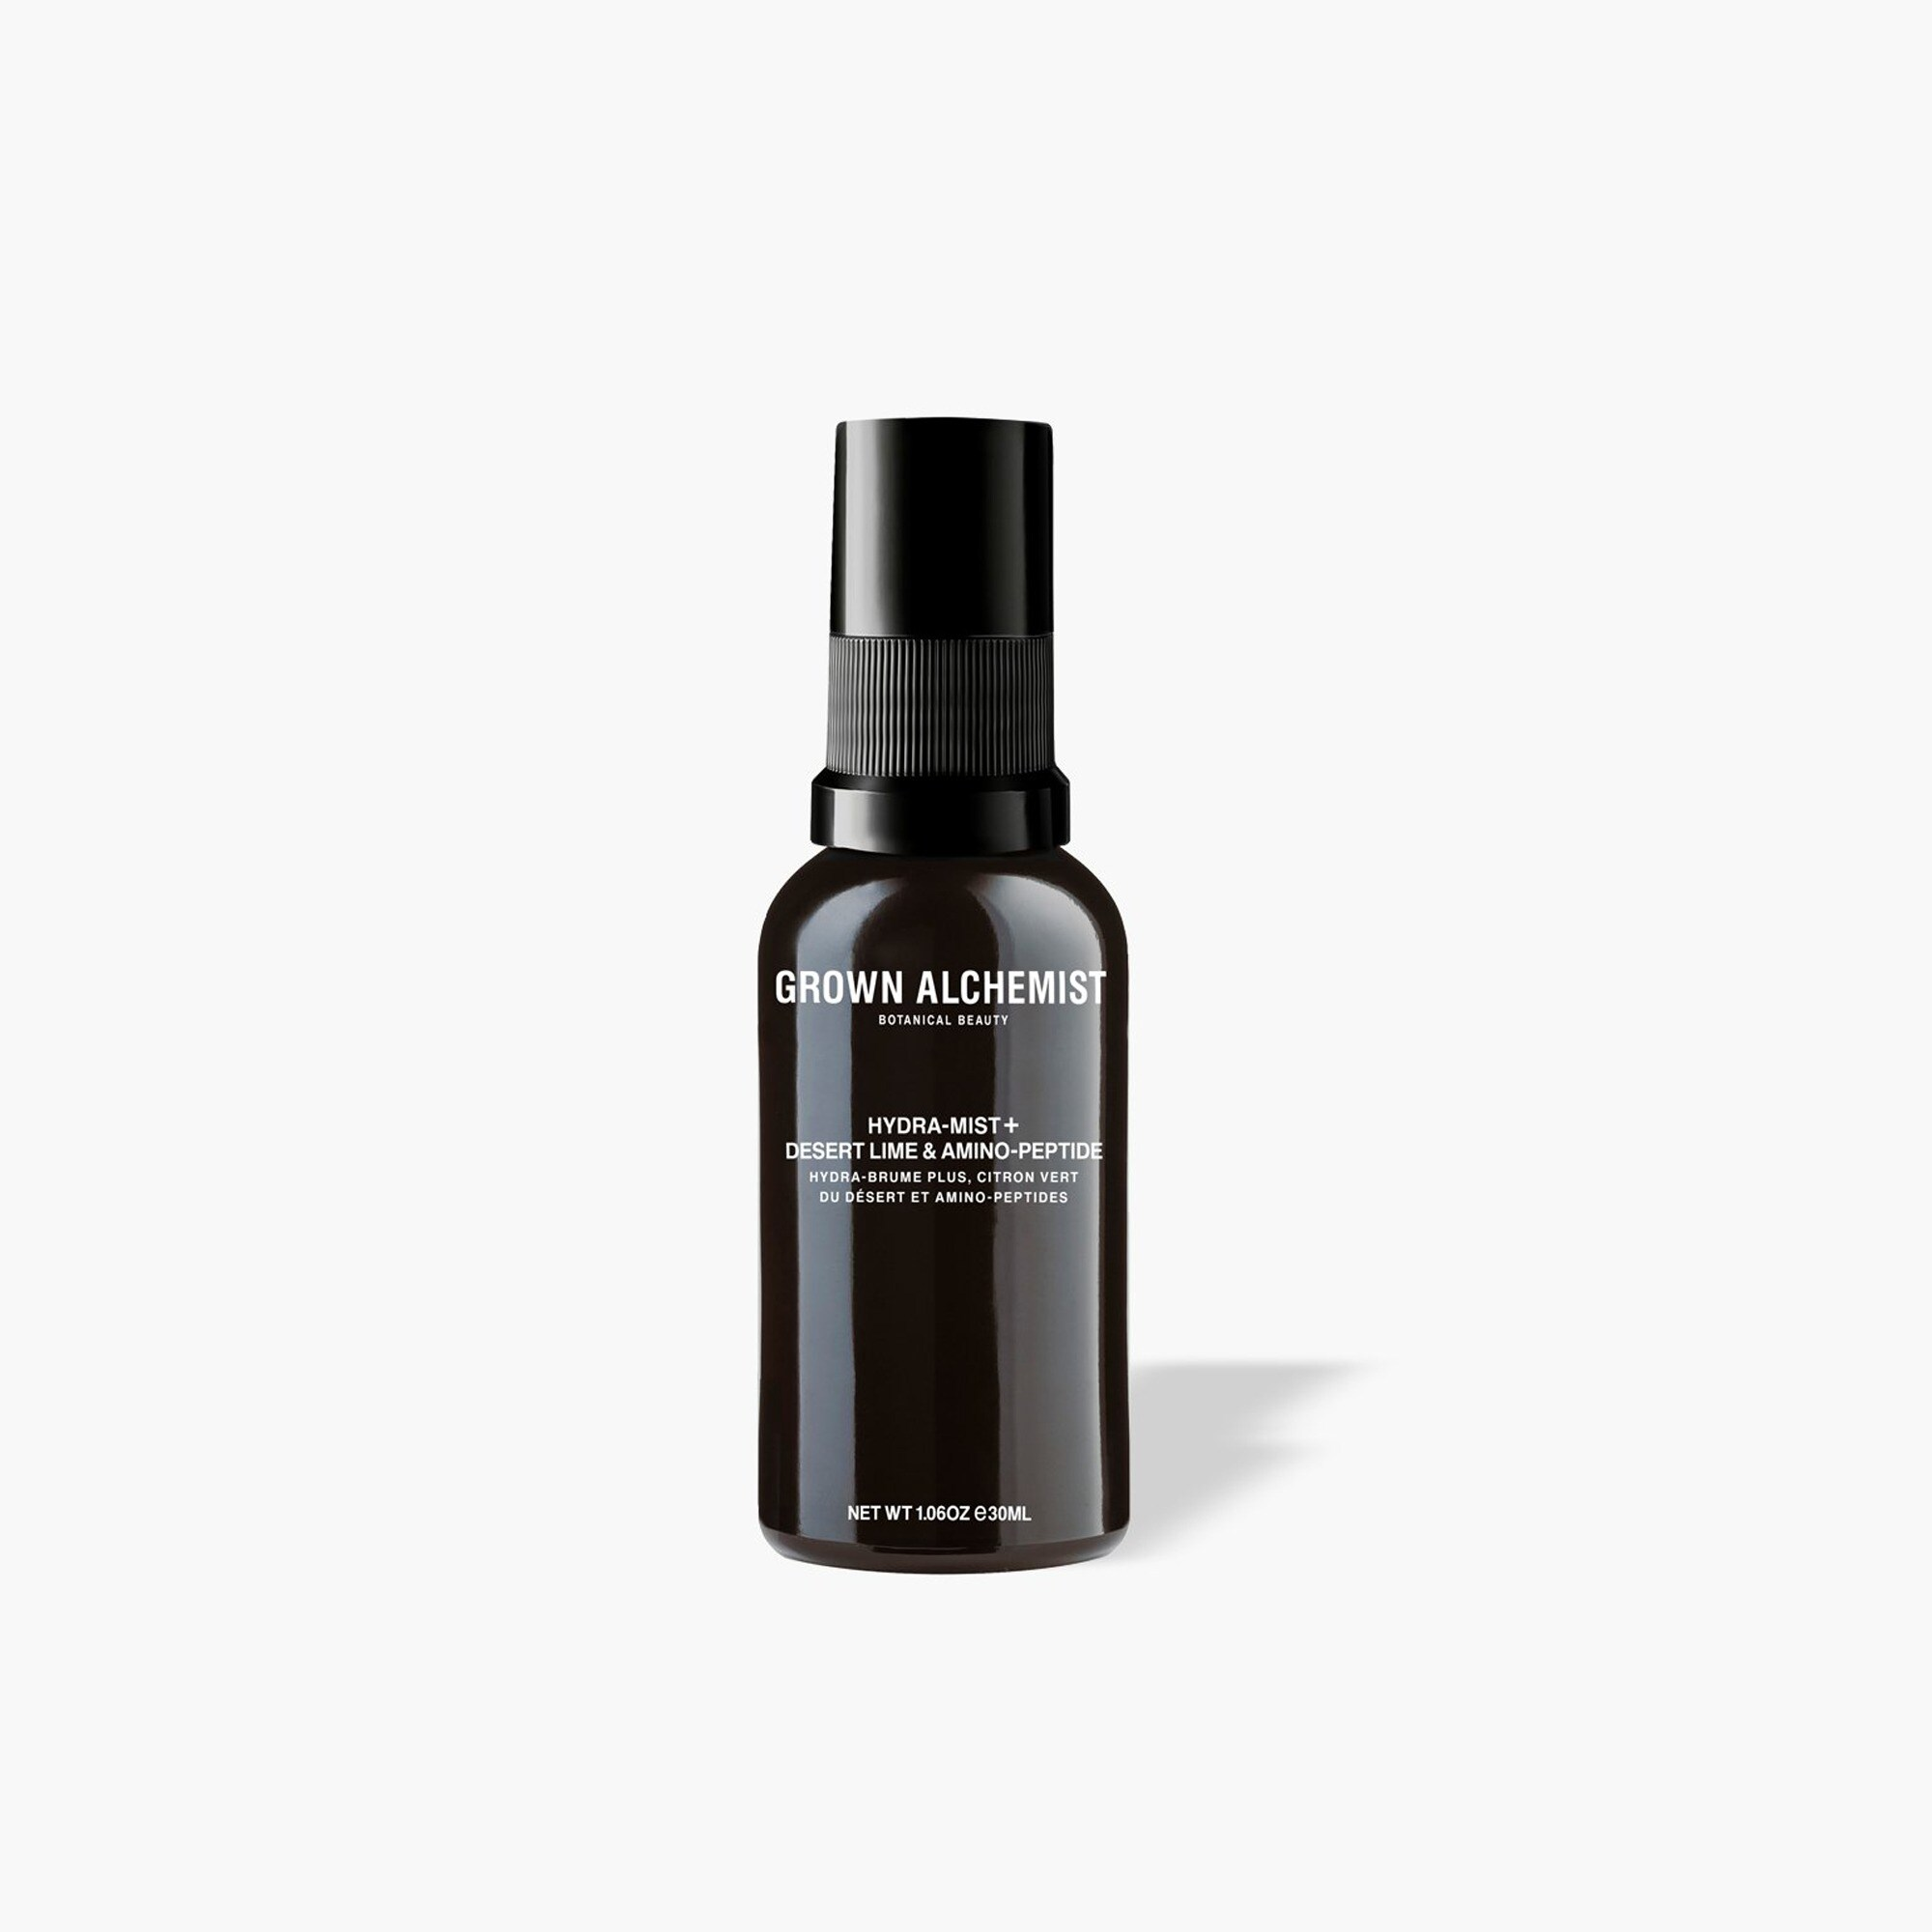 mens GROWN ALCHEMIST® hydra-mist - desert lime and amino-peptide 30